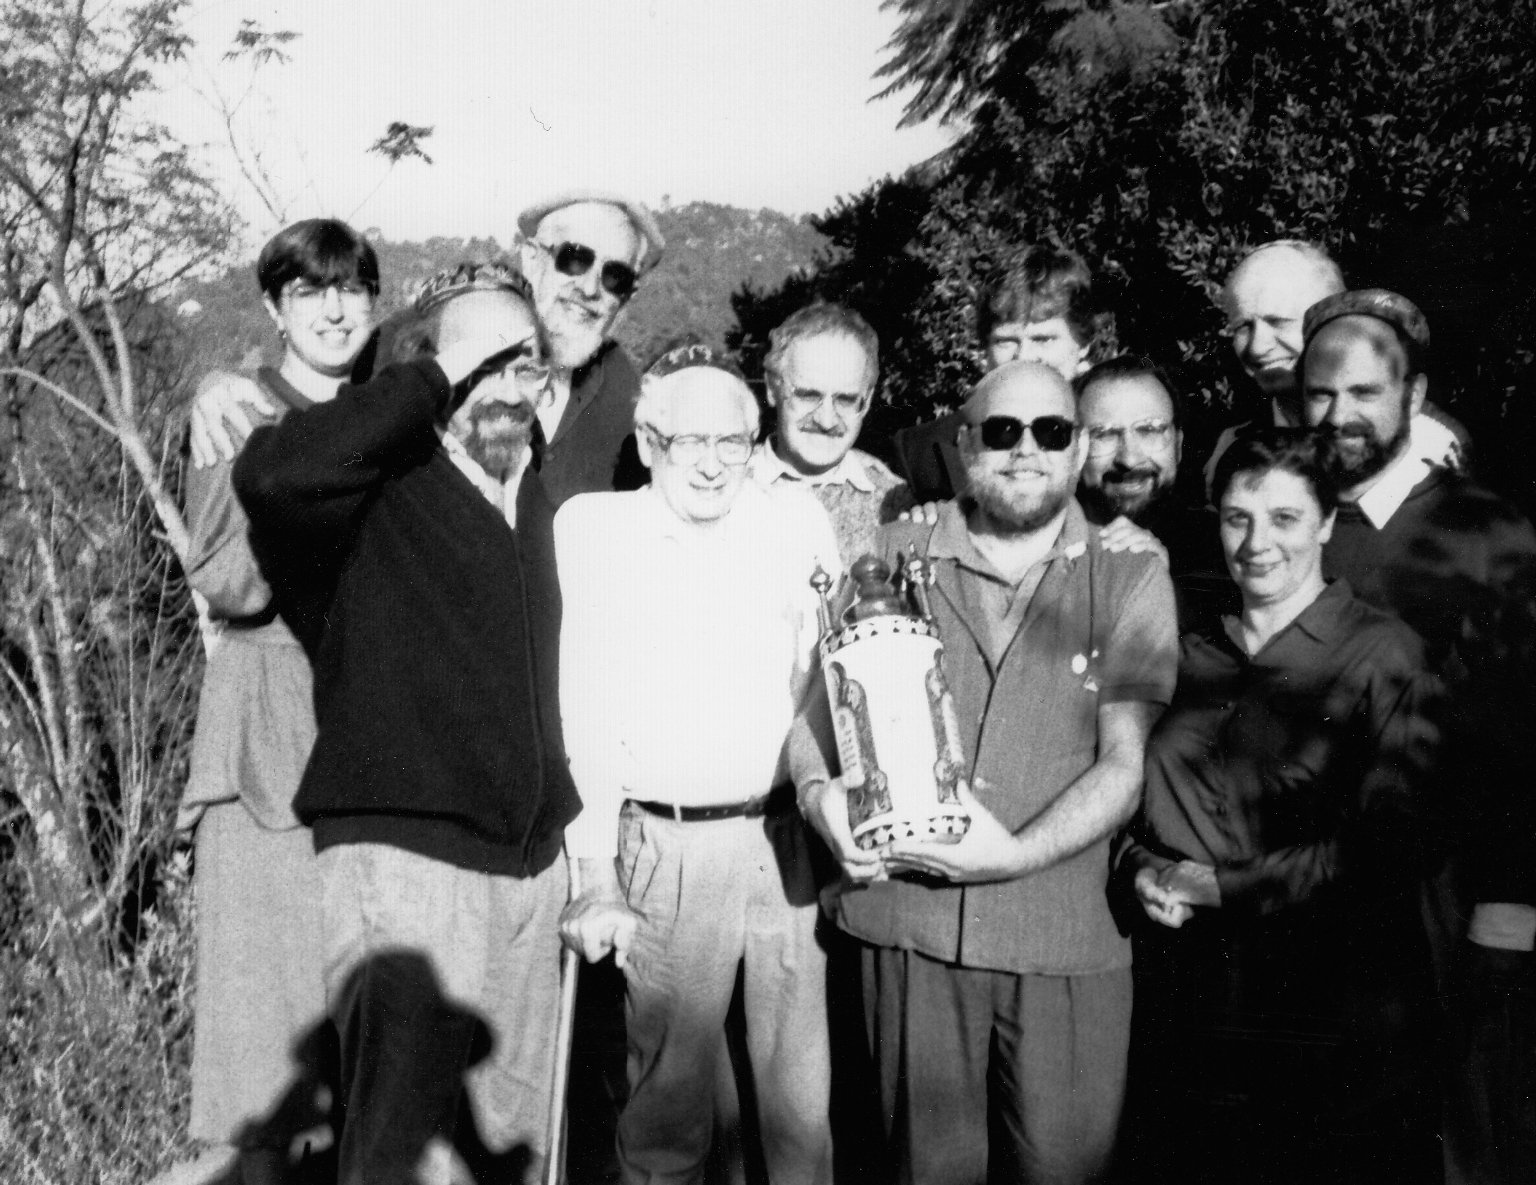 Participants in the 'Jew in the Lotus' Dialogues, Fall 1990.